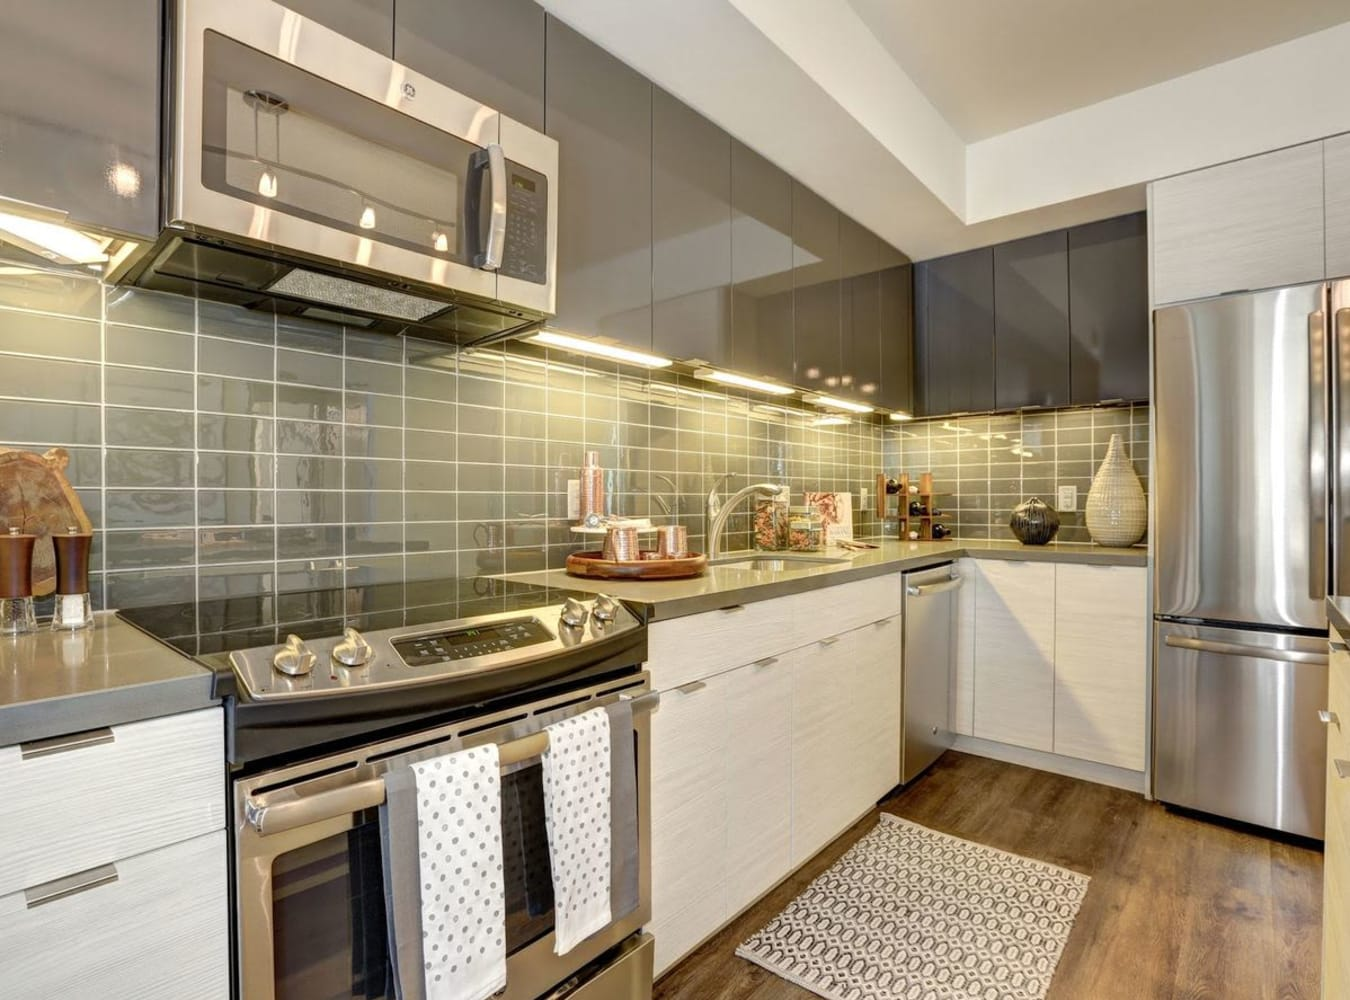 A kitchen with stainless-steel appliances at Solaire 7077 Woodmont in Bethesda, Maryland